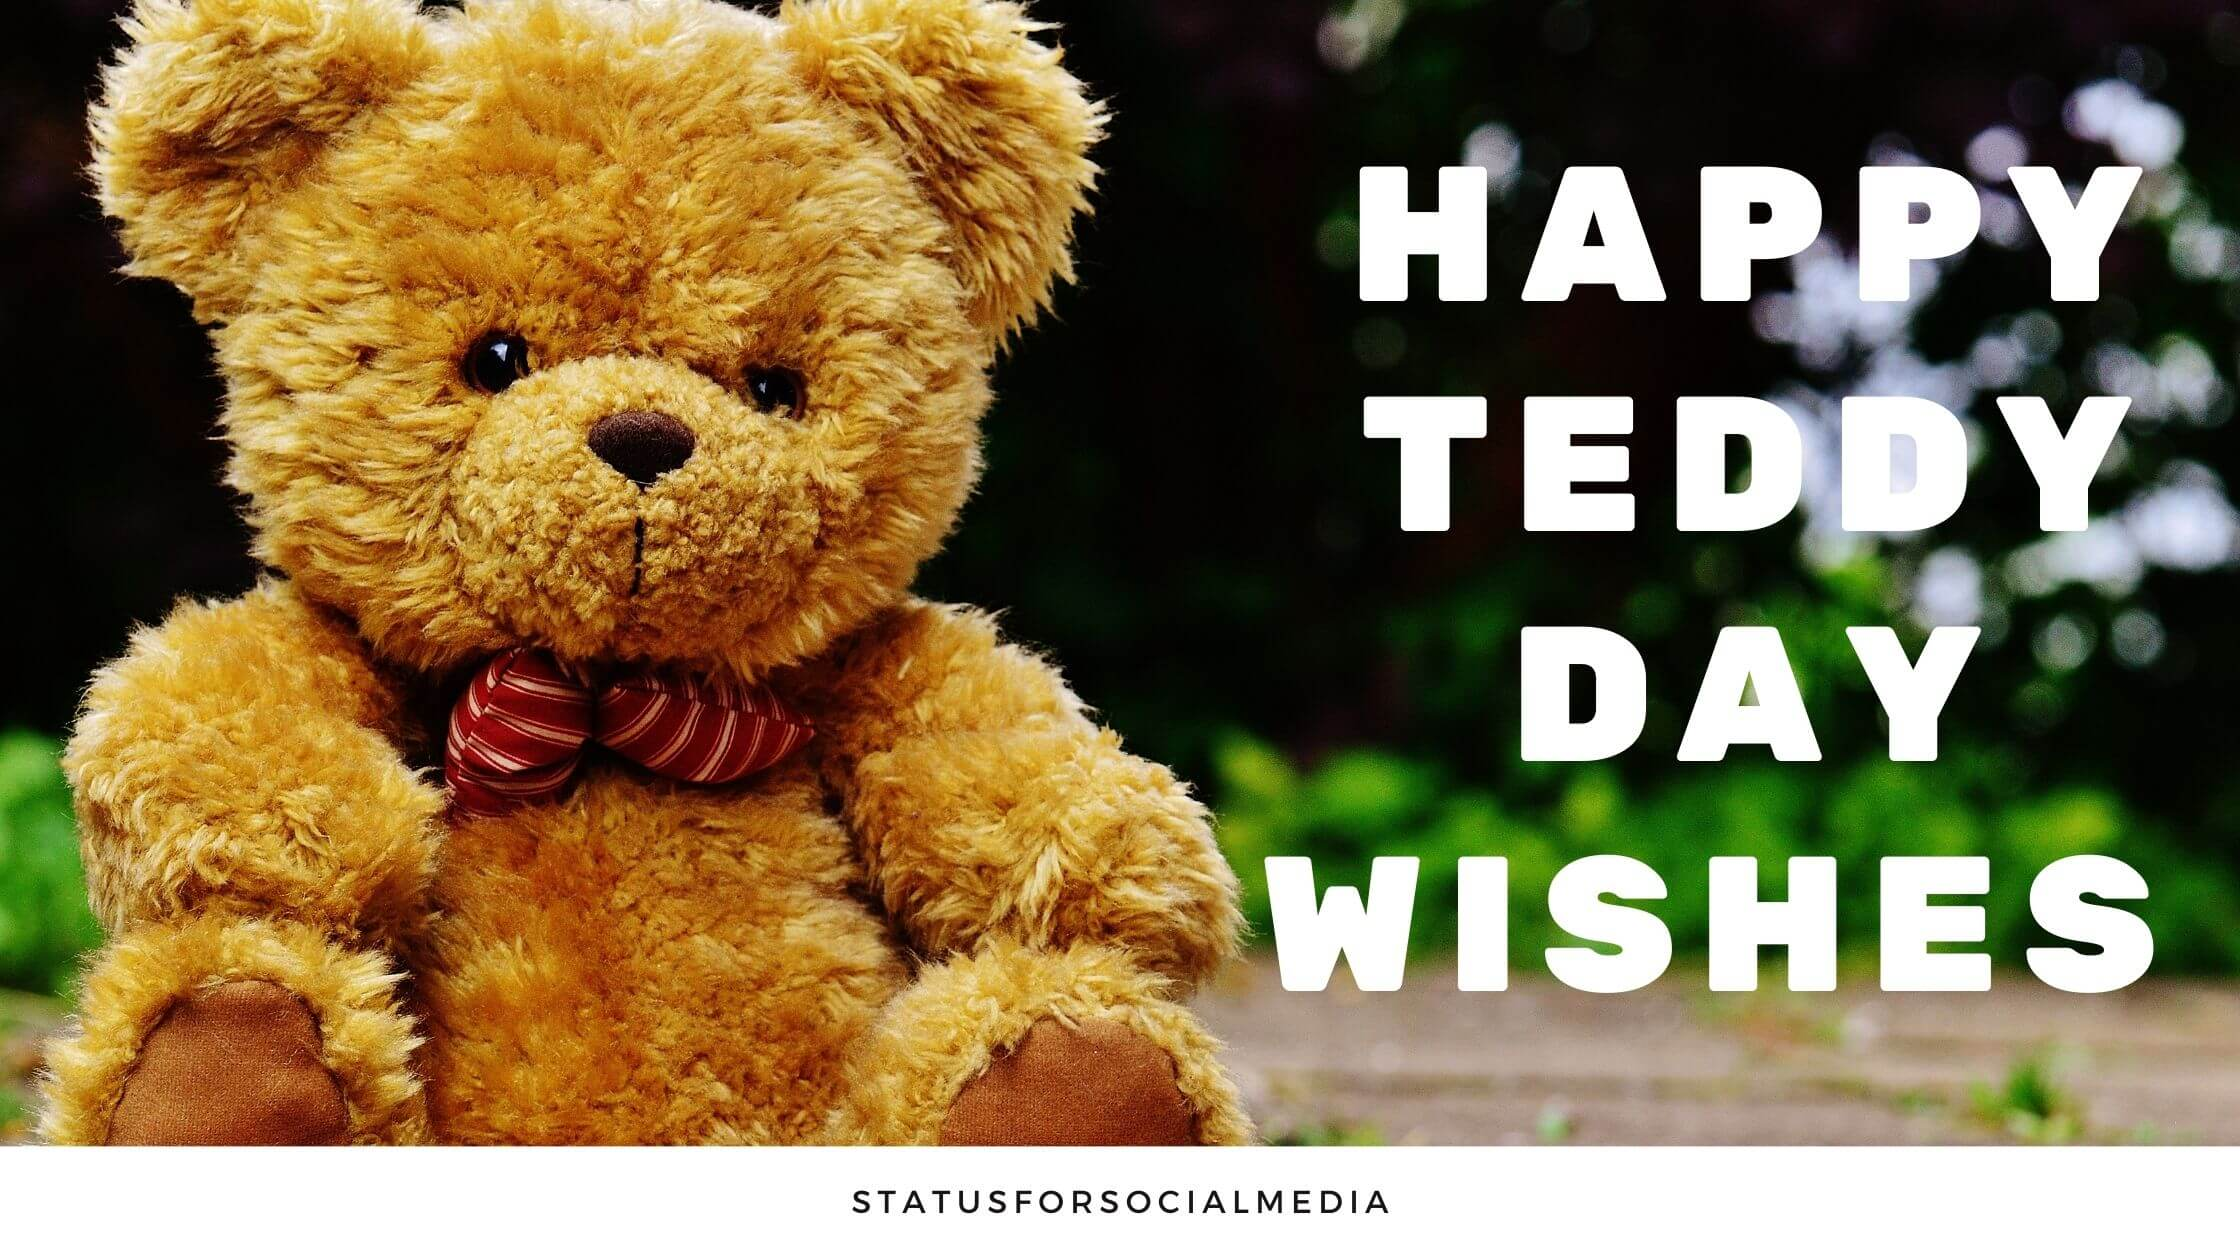 Happy Teddy day wishes and messages